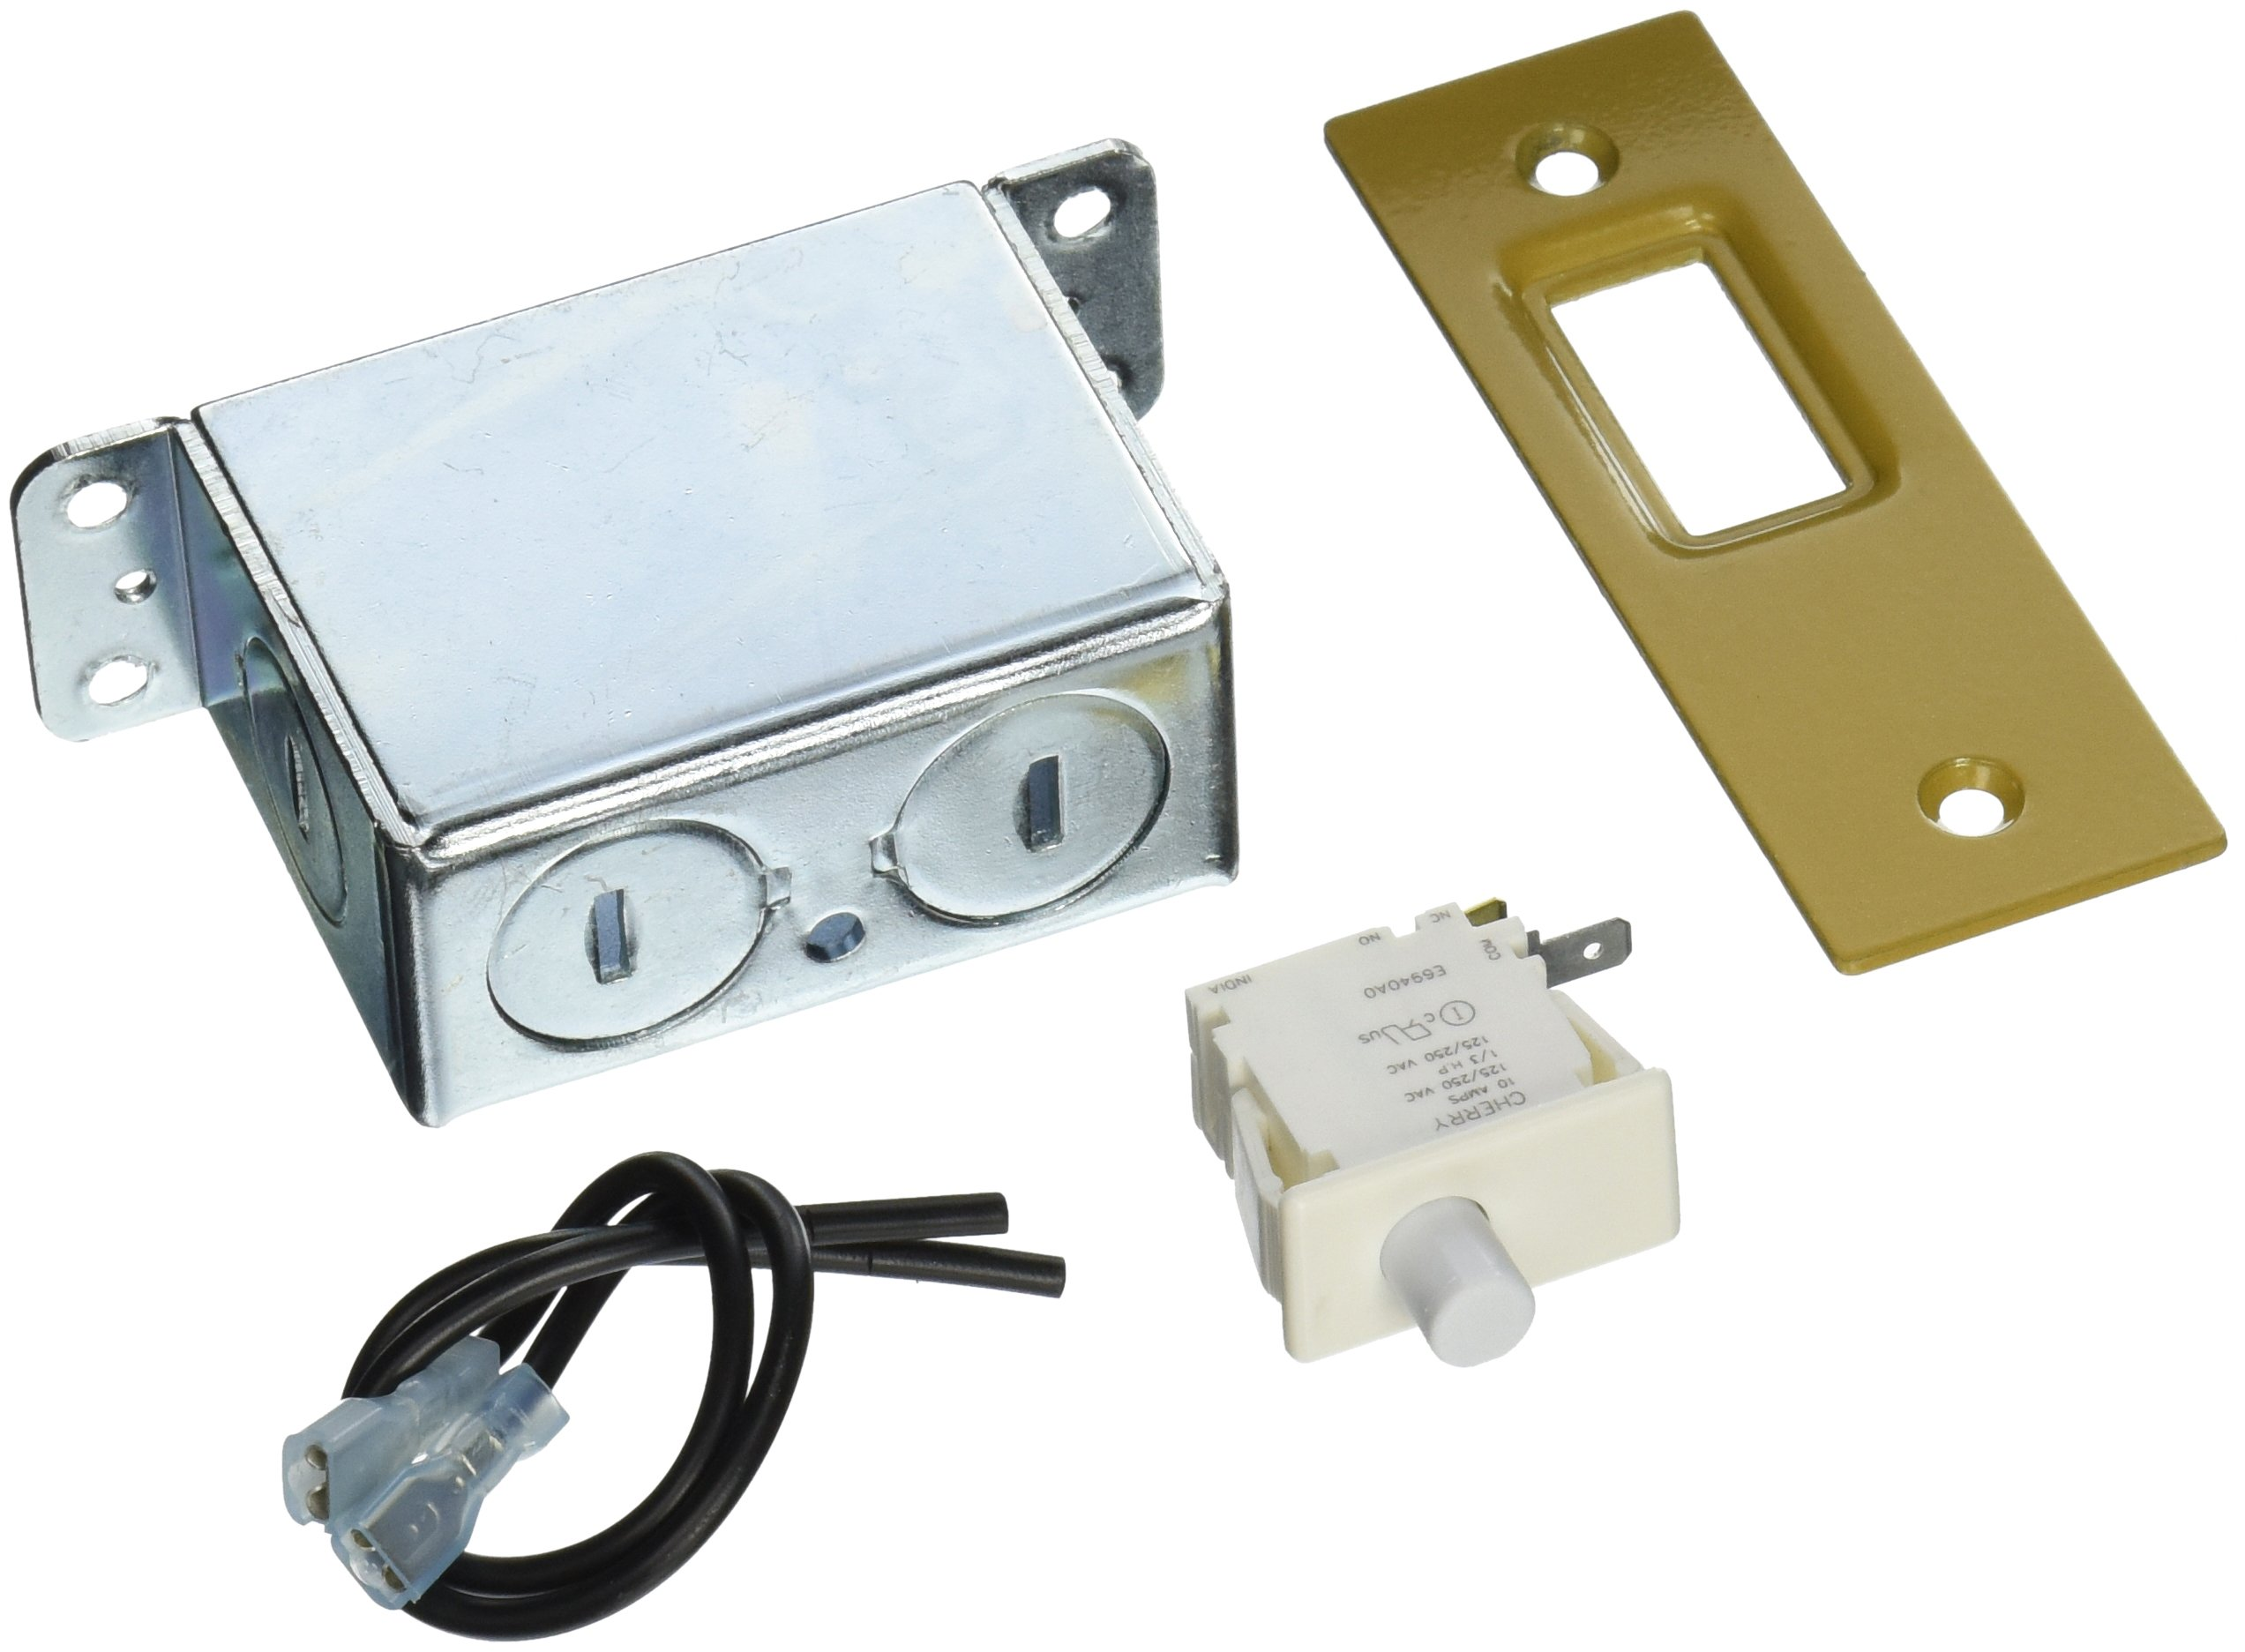 Edwards Signaling 501A-G Door Light Switches